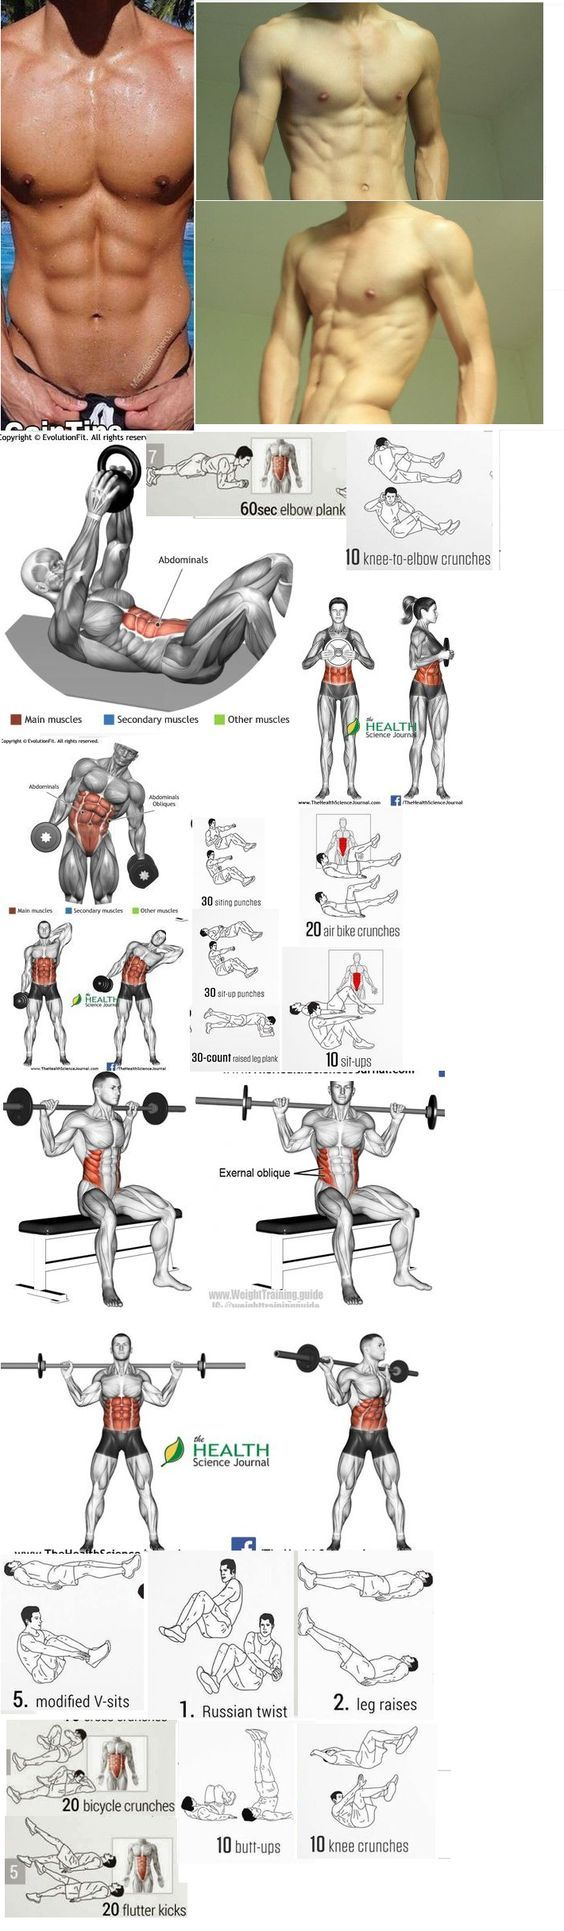 Your ultimate cheat sheet of the most effective moves to sculpt a six-pack.#menshealth #menshealthindia #fitness #abs #exercises#fitness #abs #sixpack#fitfamuk #fitfam #gymshark #instafit #gym #abs #shredded #physique #stayfocused #bodybuilding #muscle #fitnesscoach #thesweatlife #fitspiration #fitspo #ukfitfam #fitness